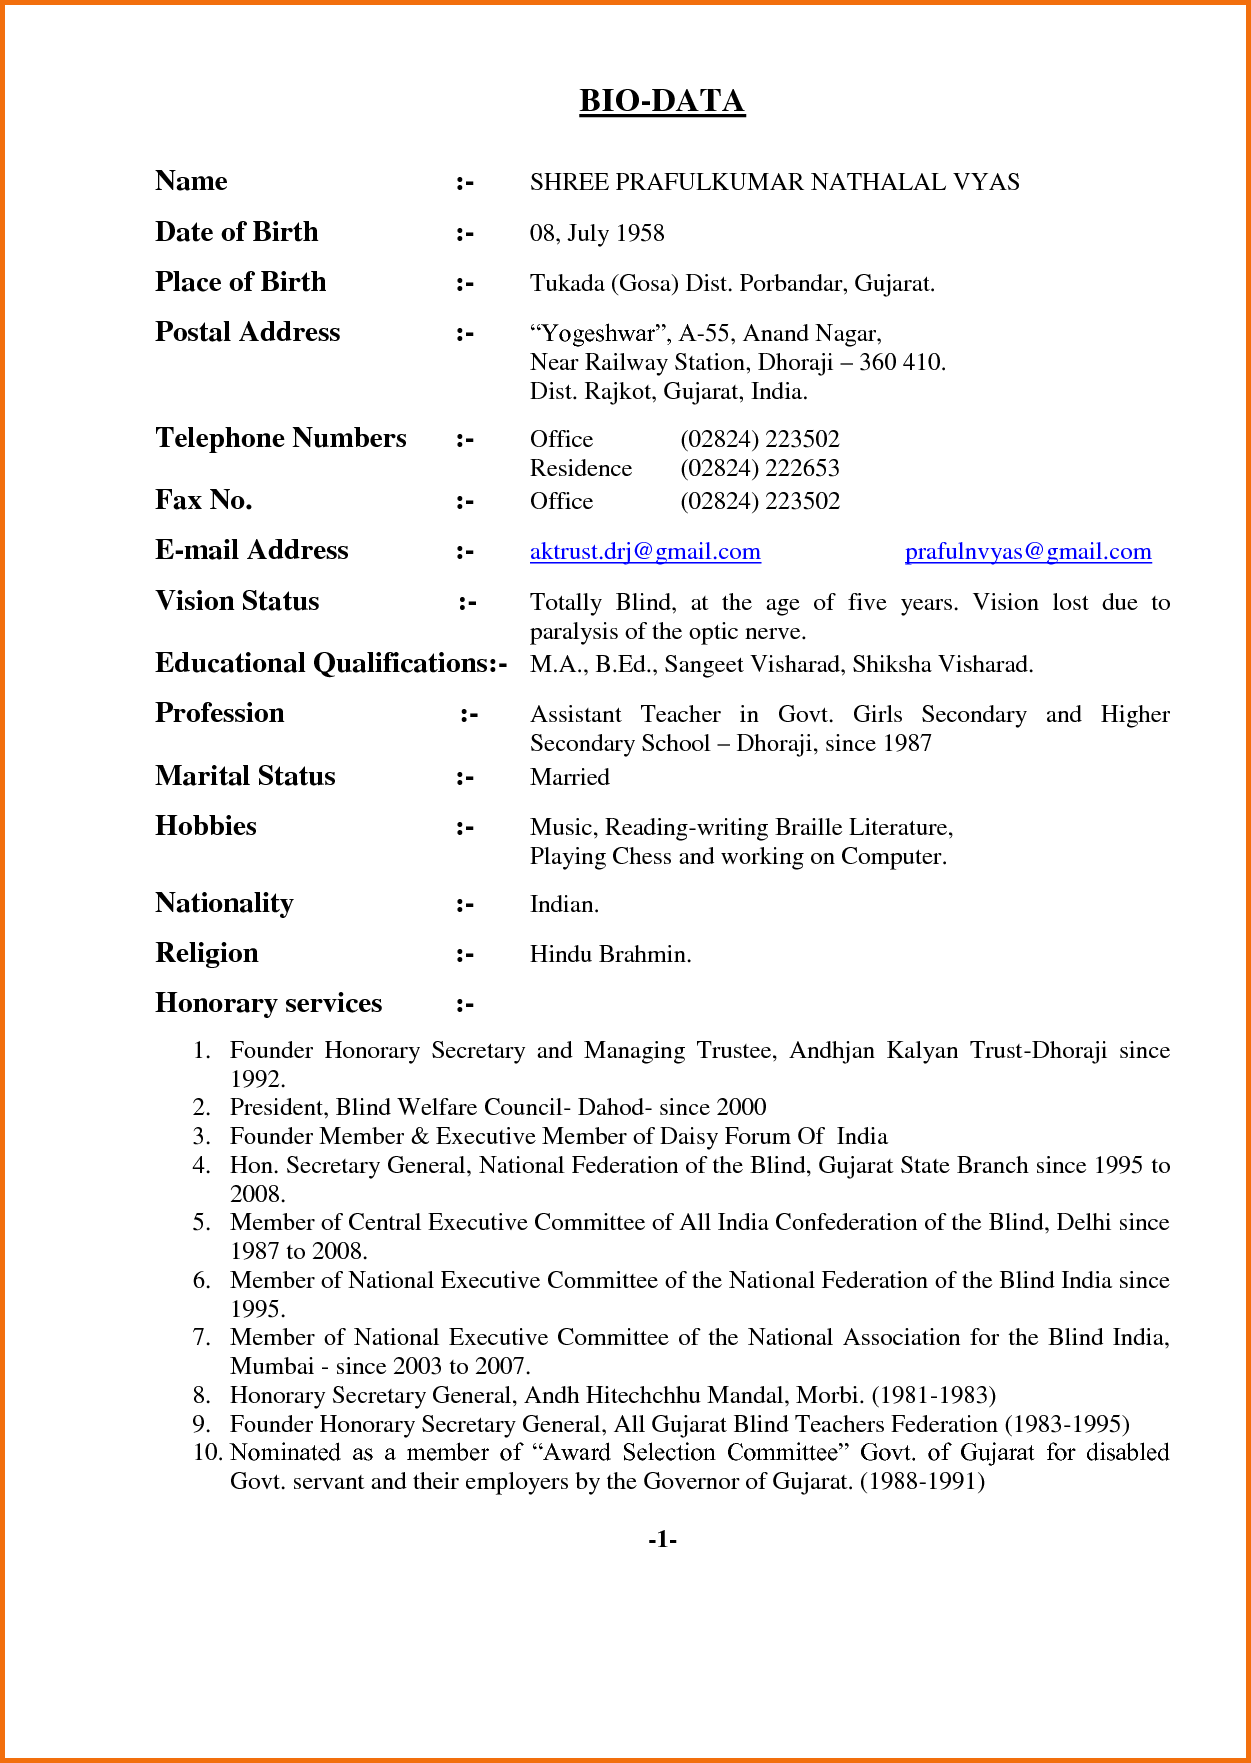 Marriage Biodata Format For Job Application Formatting Samples Teachers Examples Resumes Bio Data For Marriage Biodata Format Marriage Biodata Format